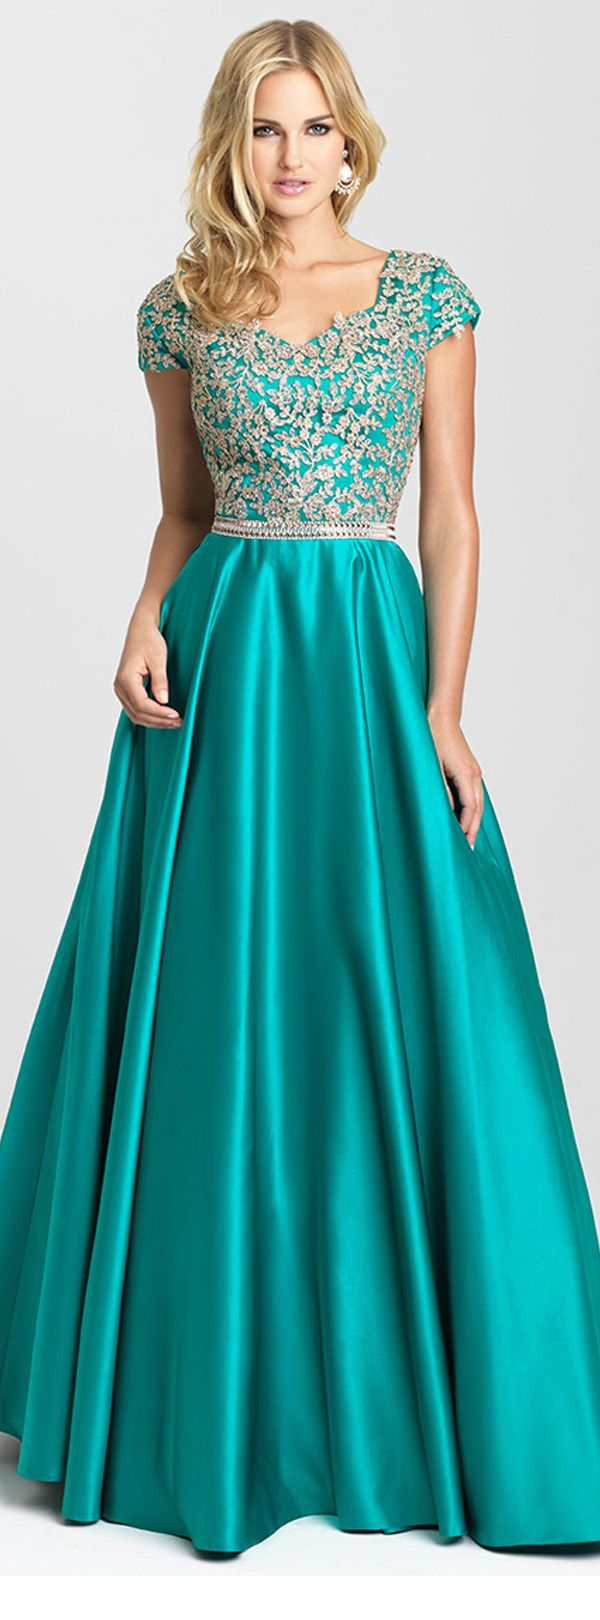 Graceful Satin V-neck Neckline A-line Prom Dresses With Beaded Lace Appliques https://bellanblue.com